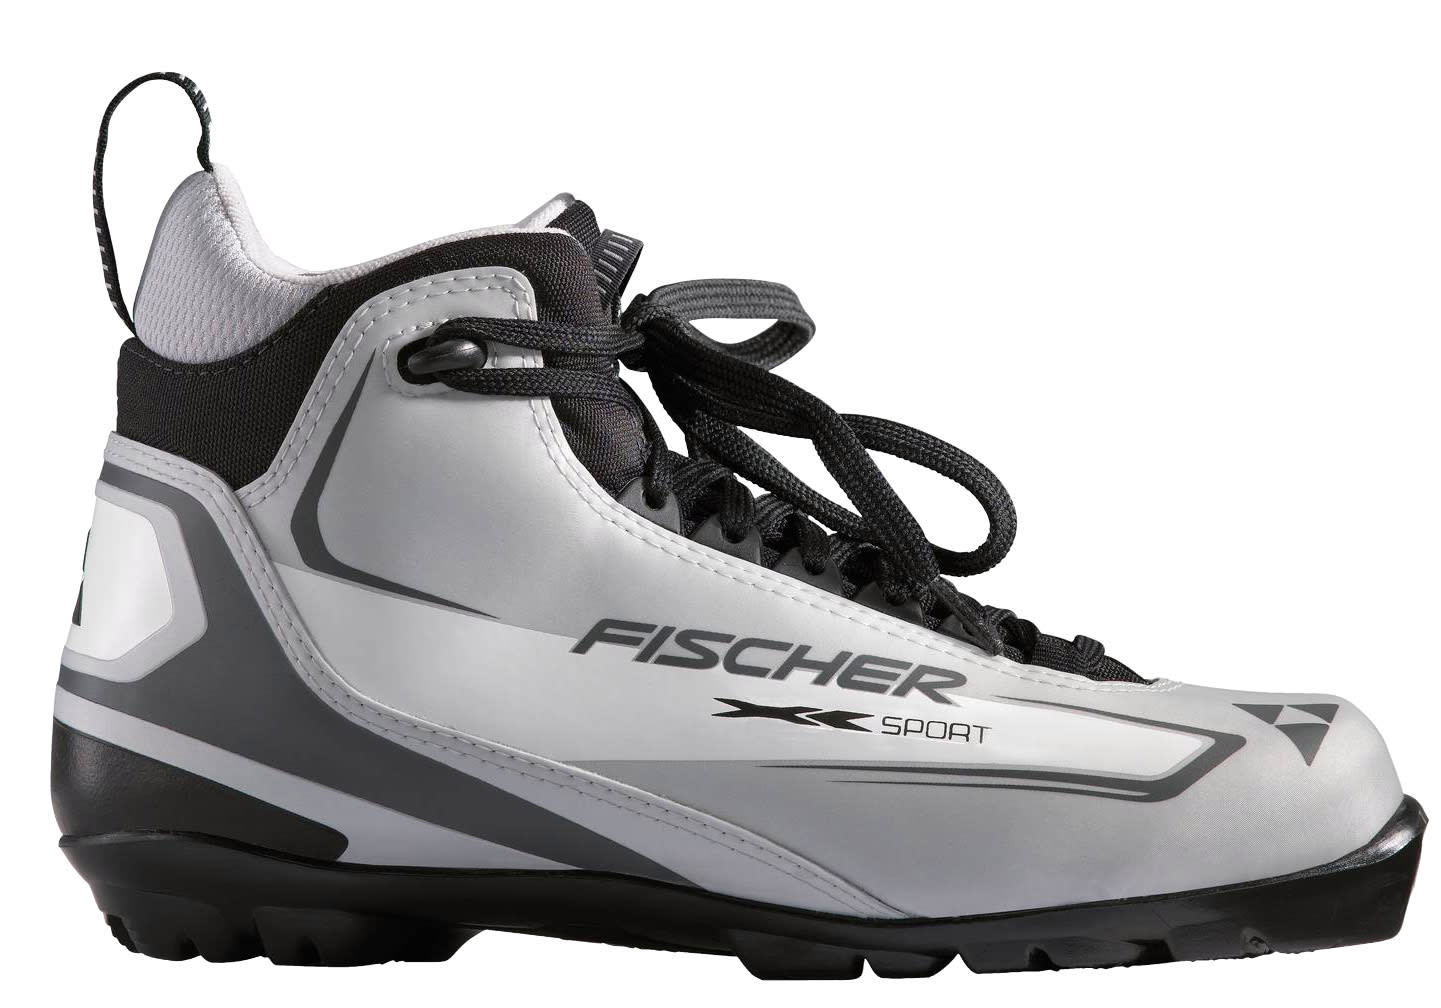 Shop for Fischer XC Sport Cross Country Ski Boots Silver - Men's